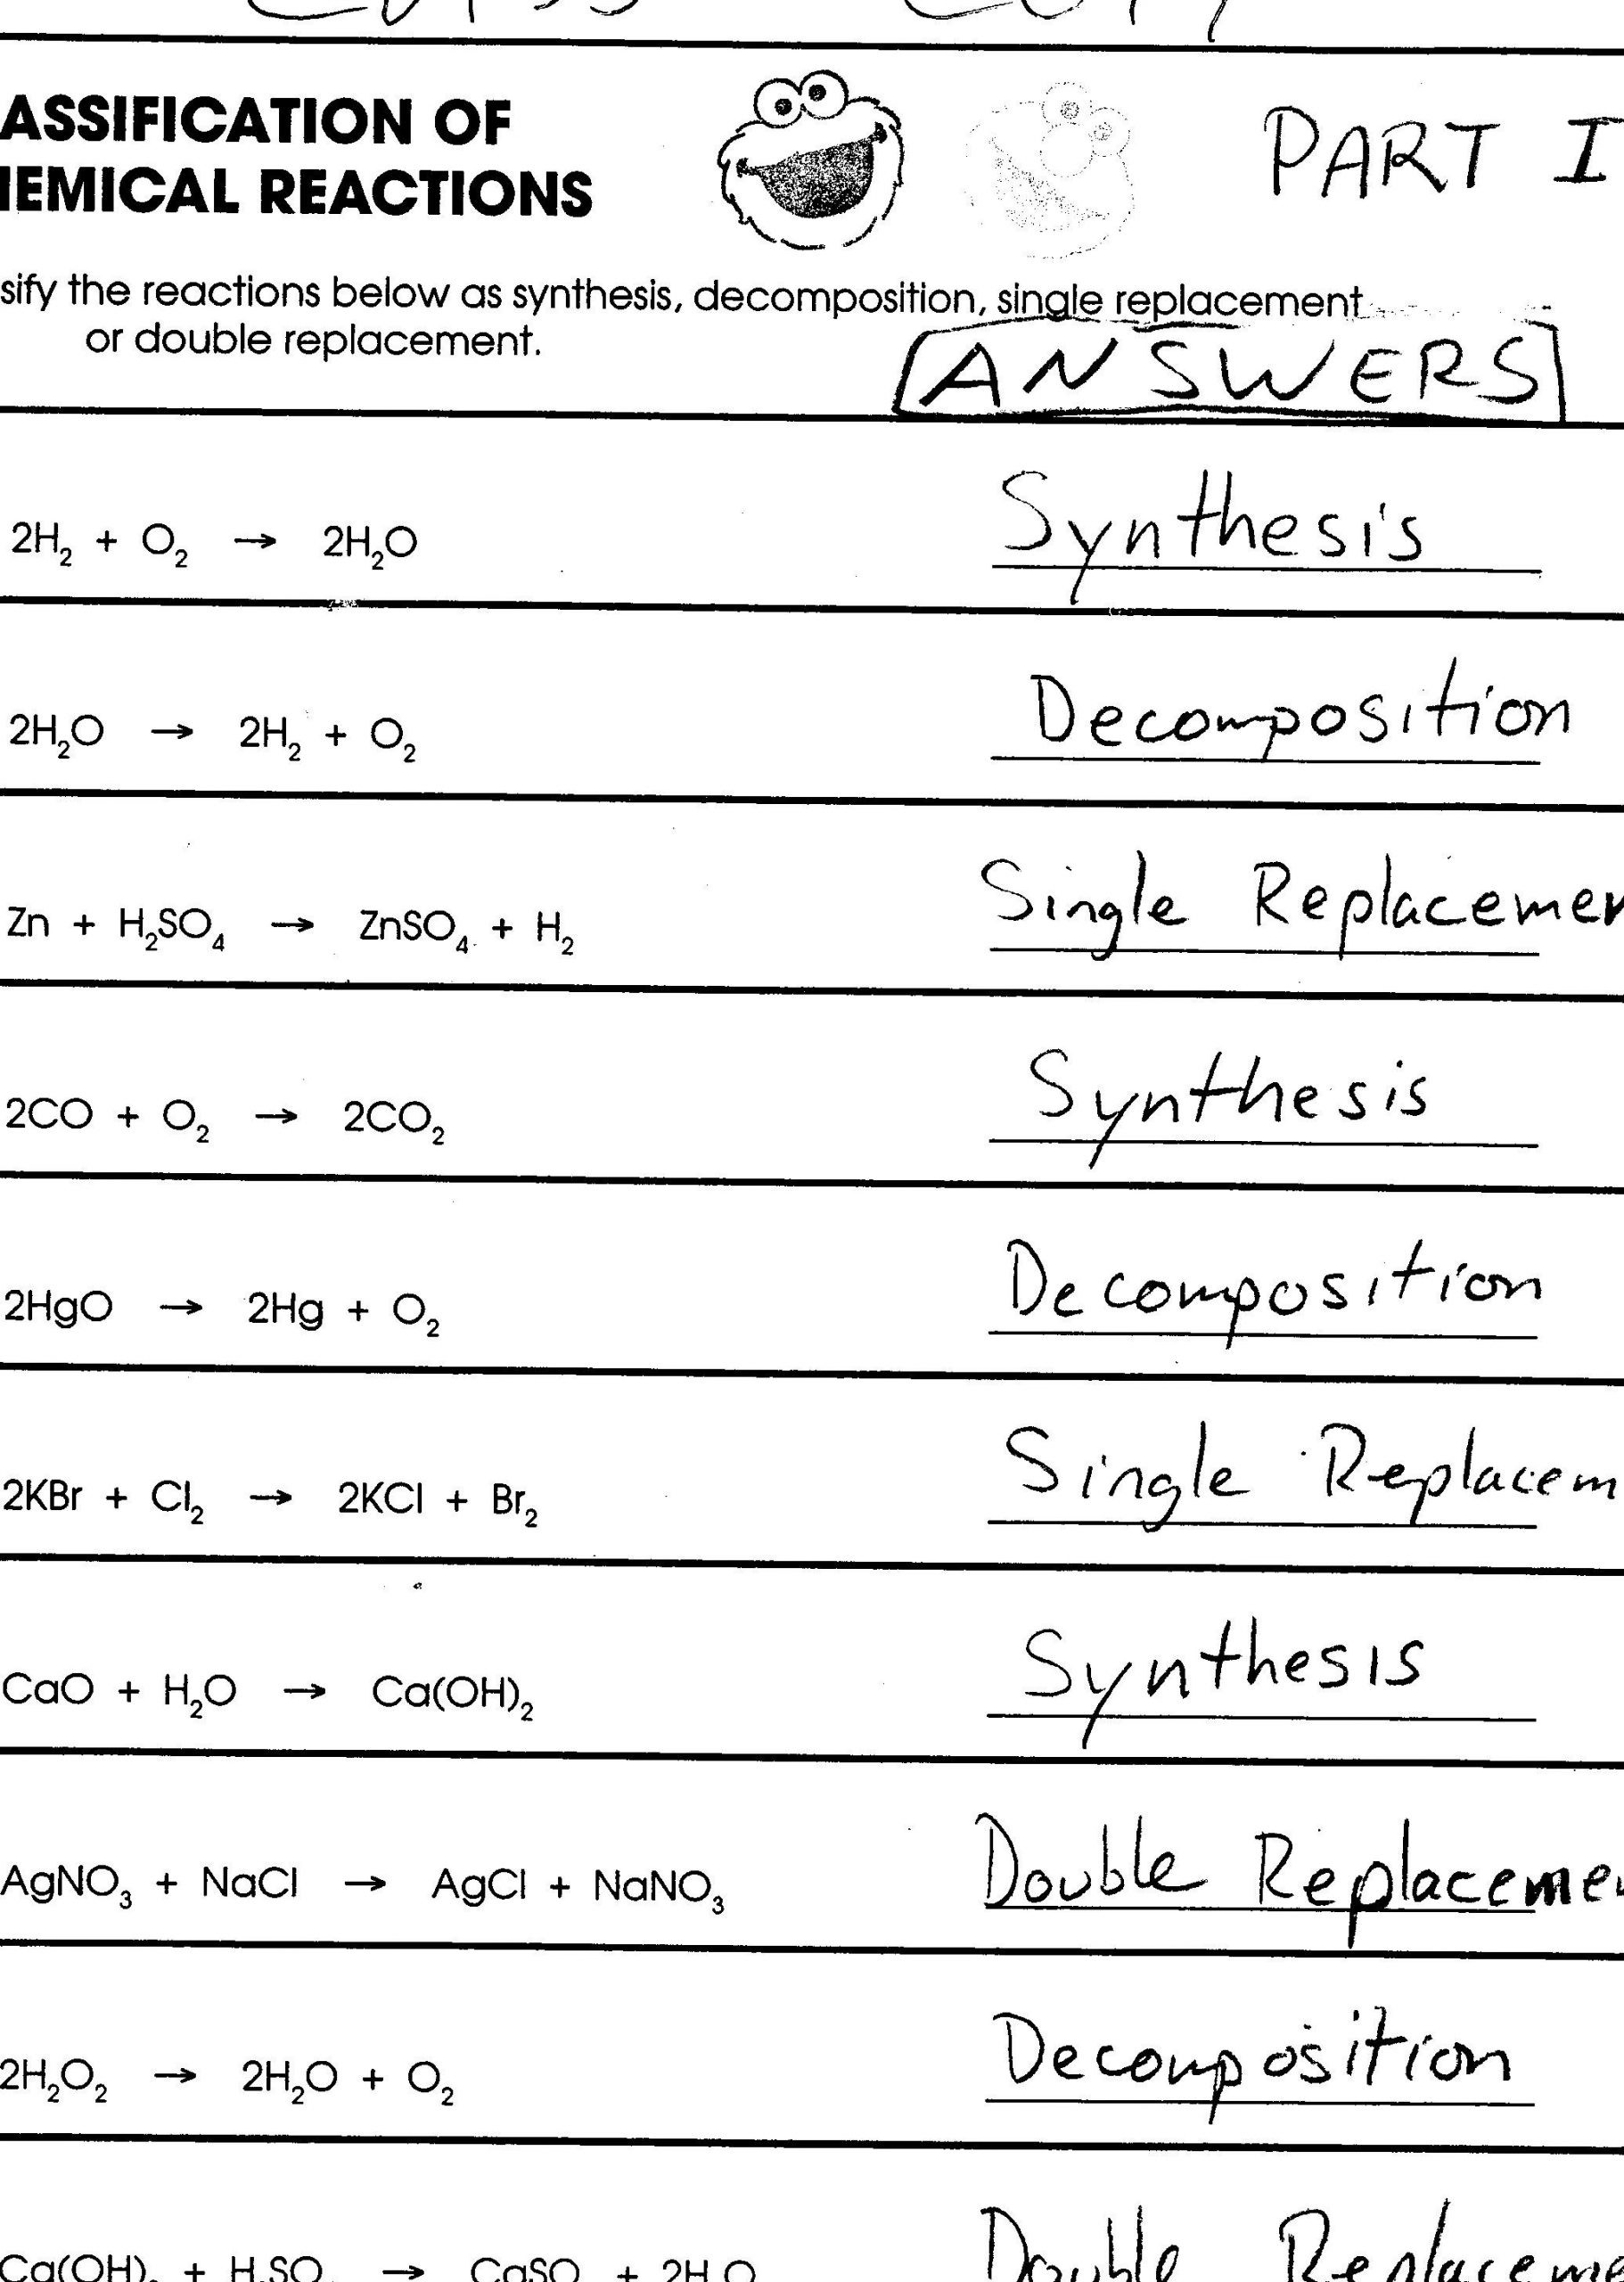 Classifying Matter Worksheet Answer Key 10 Classifying Chemical Reactions Worksheet Answers